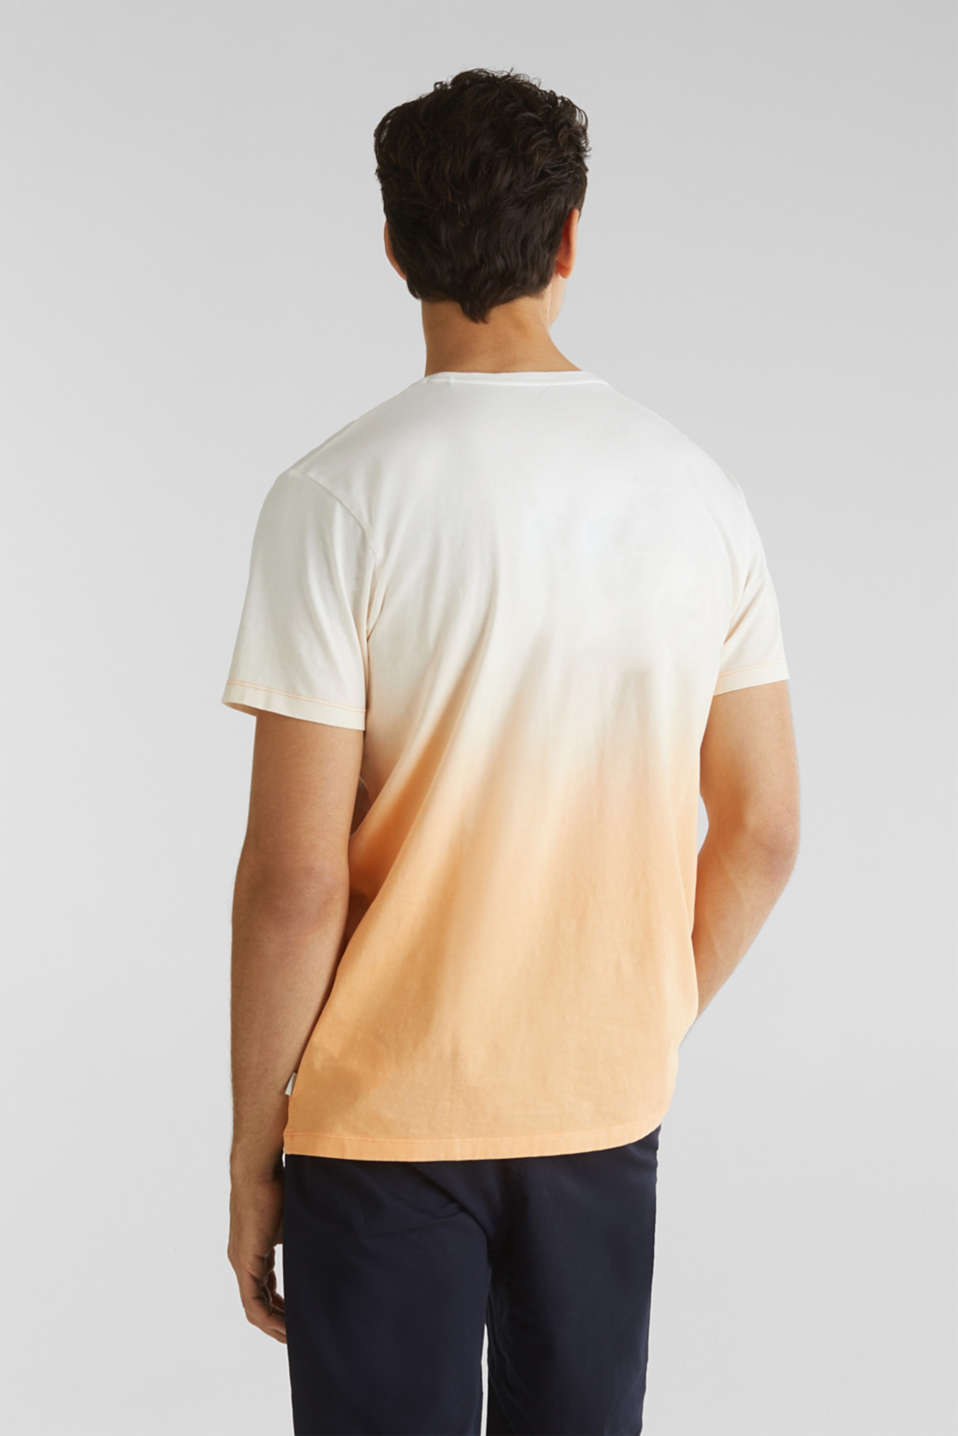 Jersey T-shirt with graduated colours, 100% cotton, PEACH 2, detail image number 2